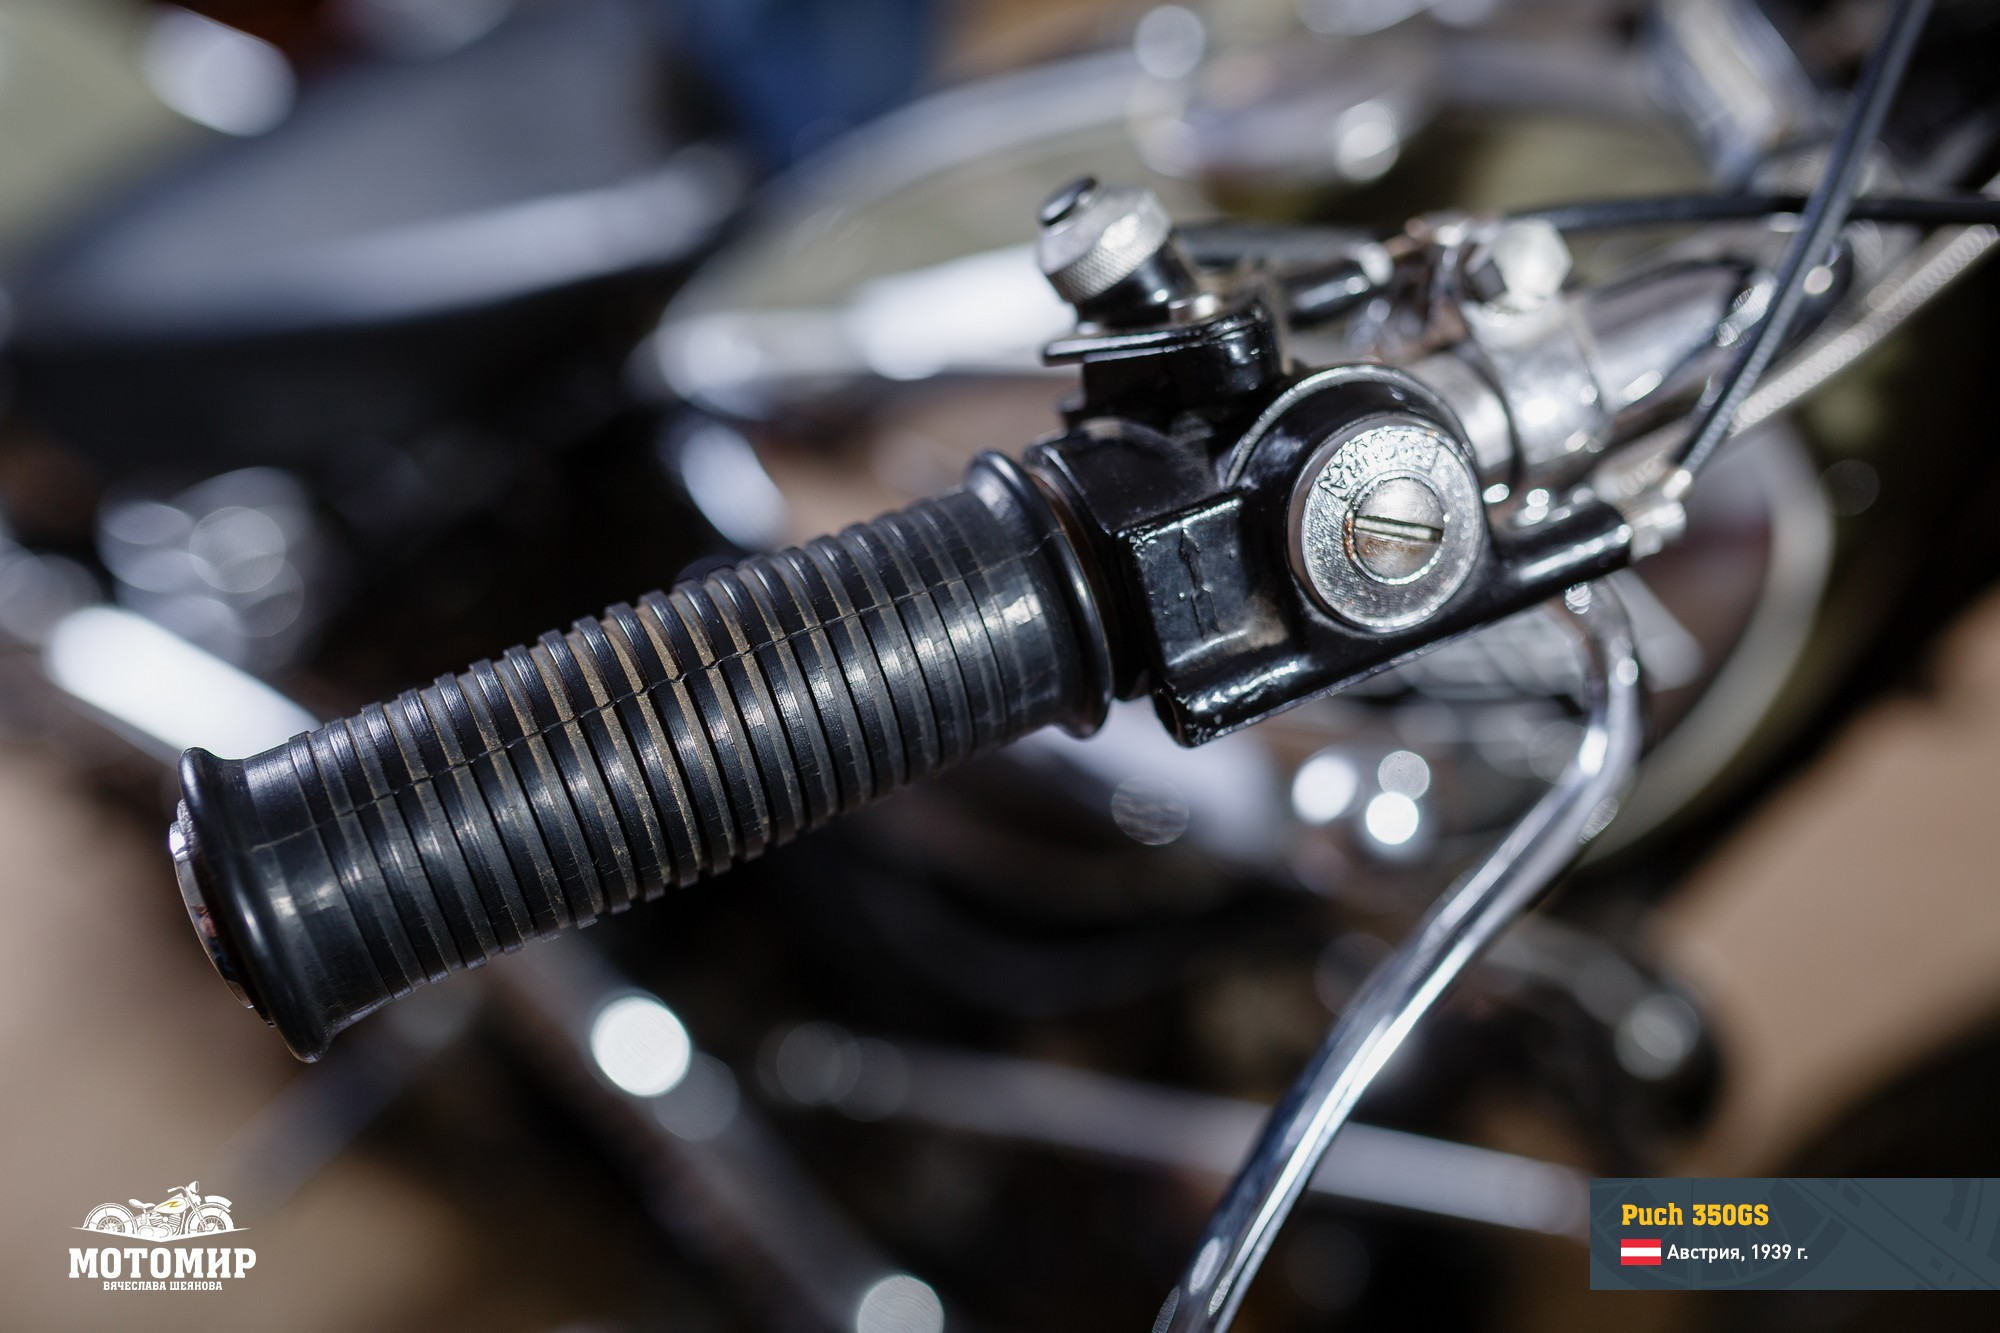 puch-350gs-201601-web-14